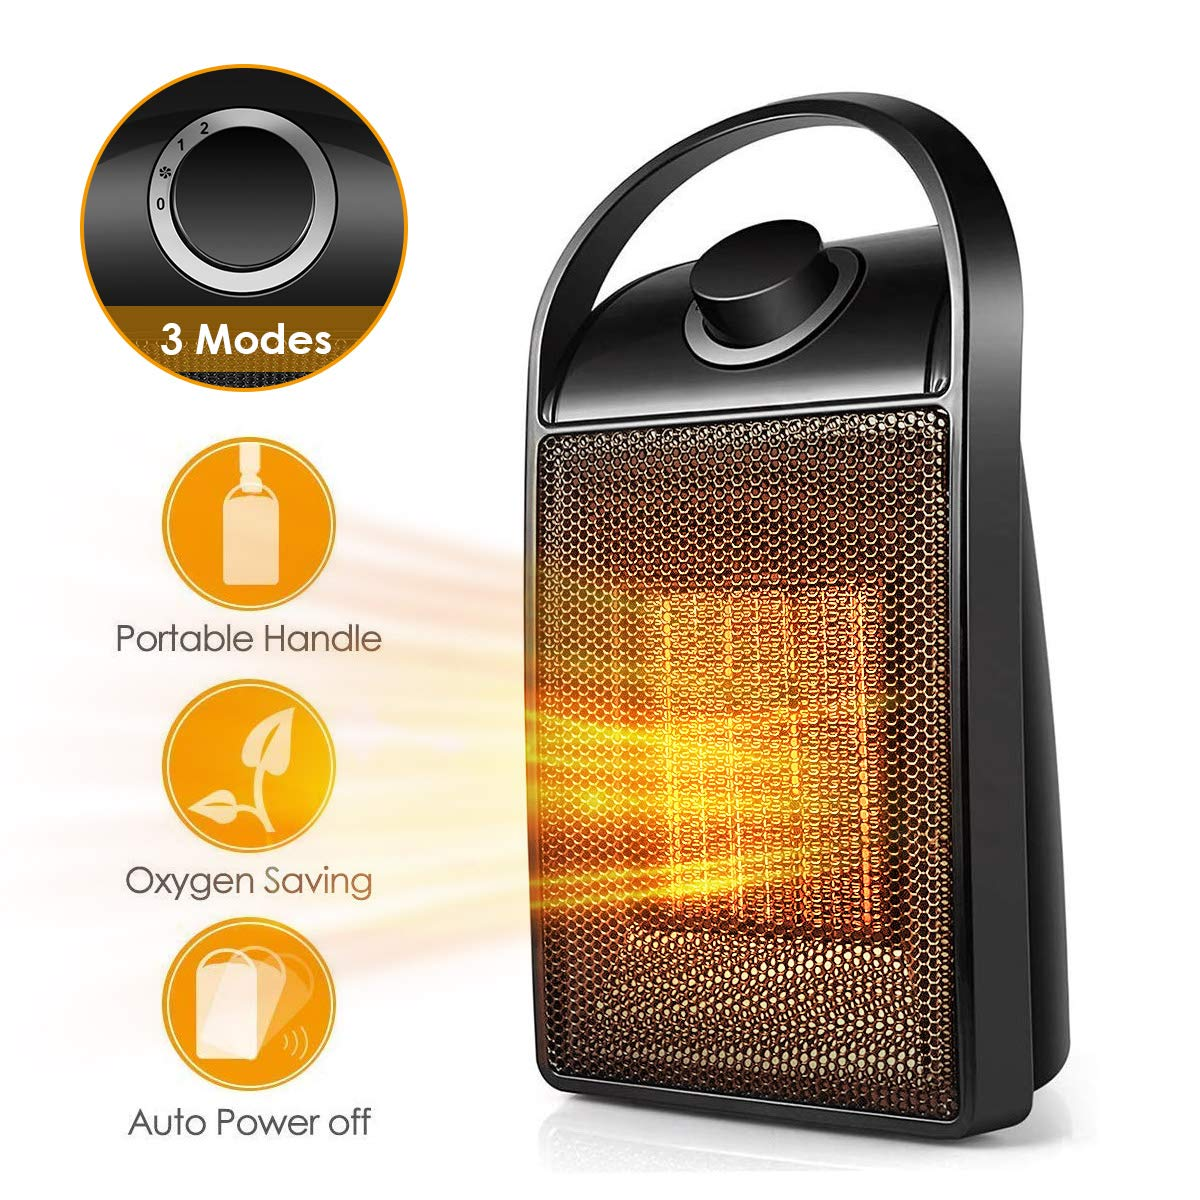 Space Heater, Portable Quiet Ceramic Space Heater , Mini Desk Personal Heater with Tip-Over Over-Heat Protection, Perfect For the Home or Home